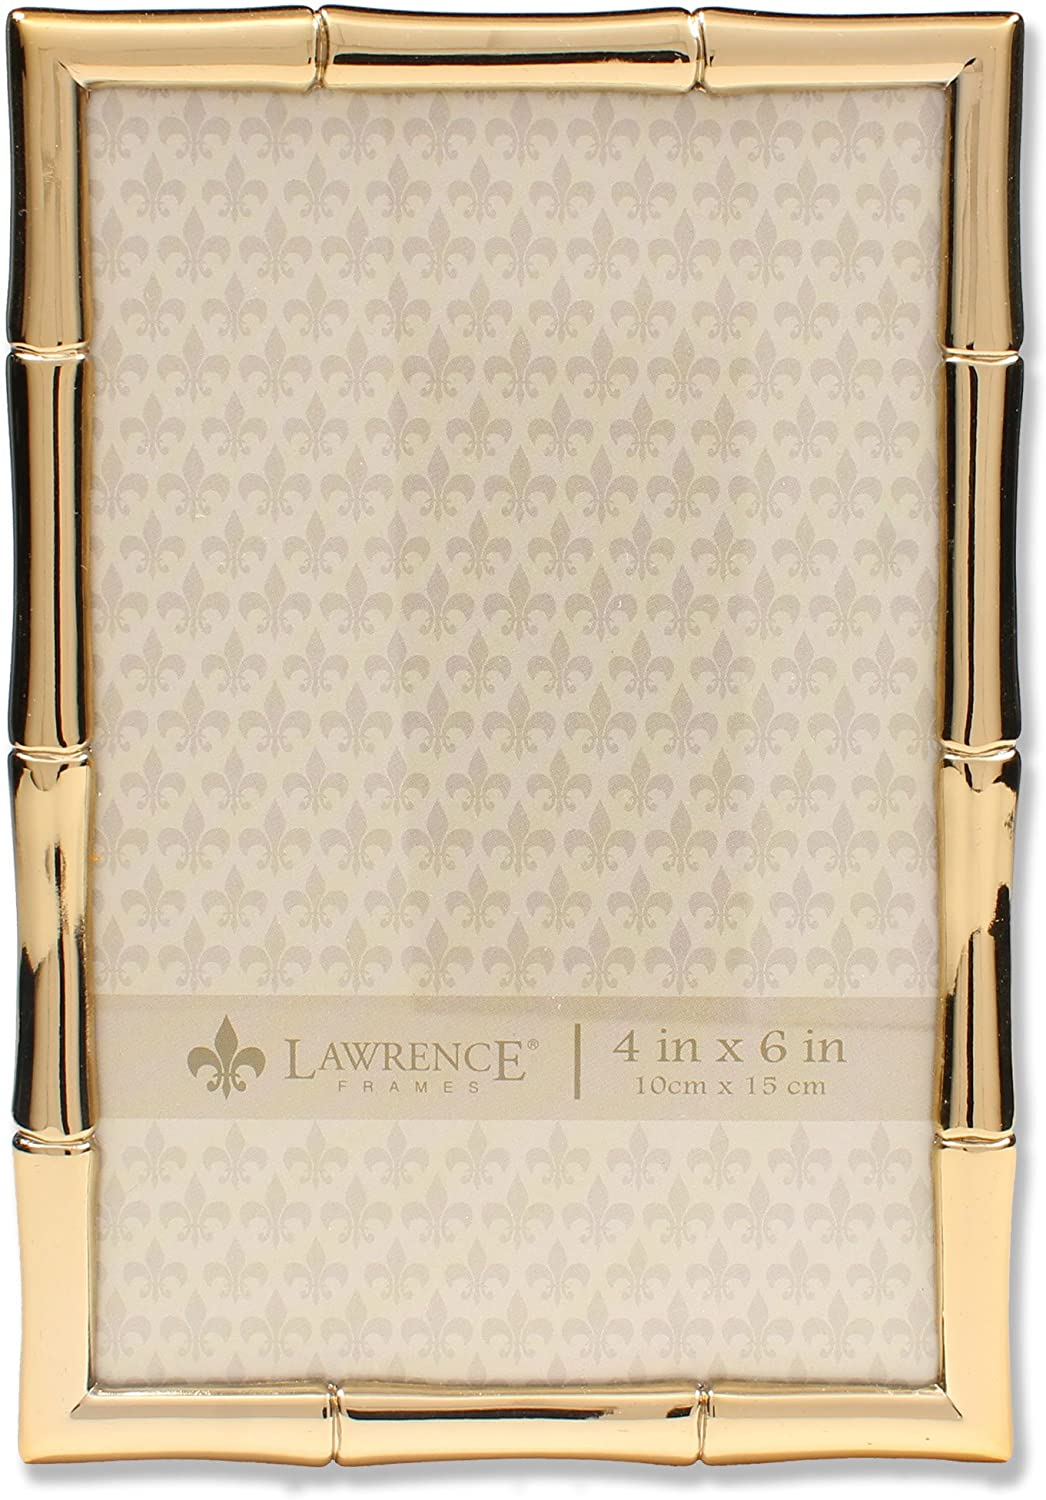 Amazon Com Lawrence Frames 4x6 Gold Metal Picture Bamboo Design Frame Home Kitchen